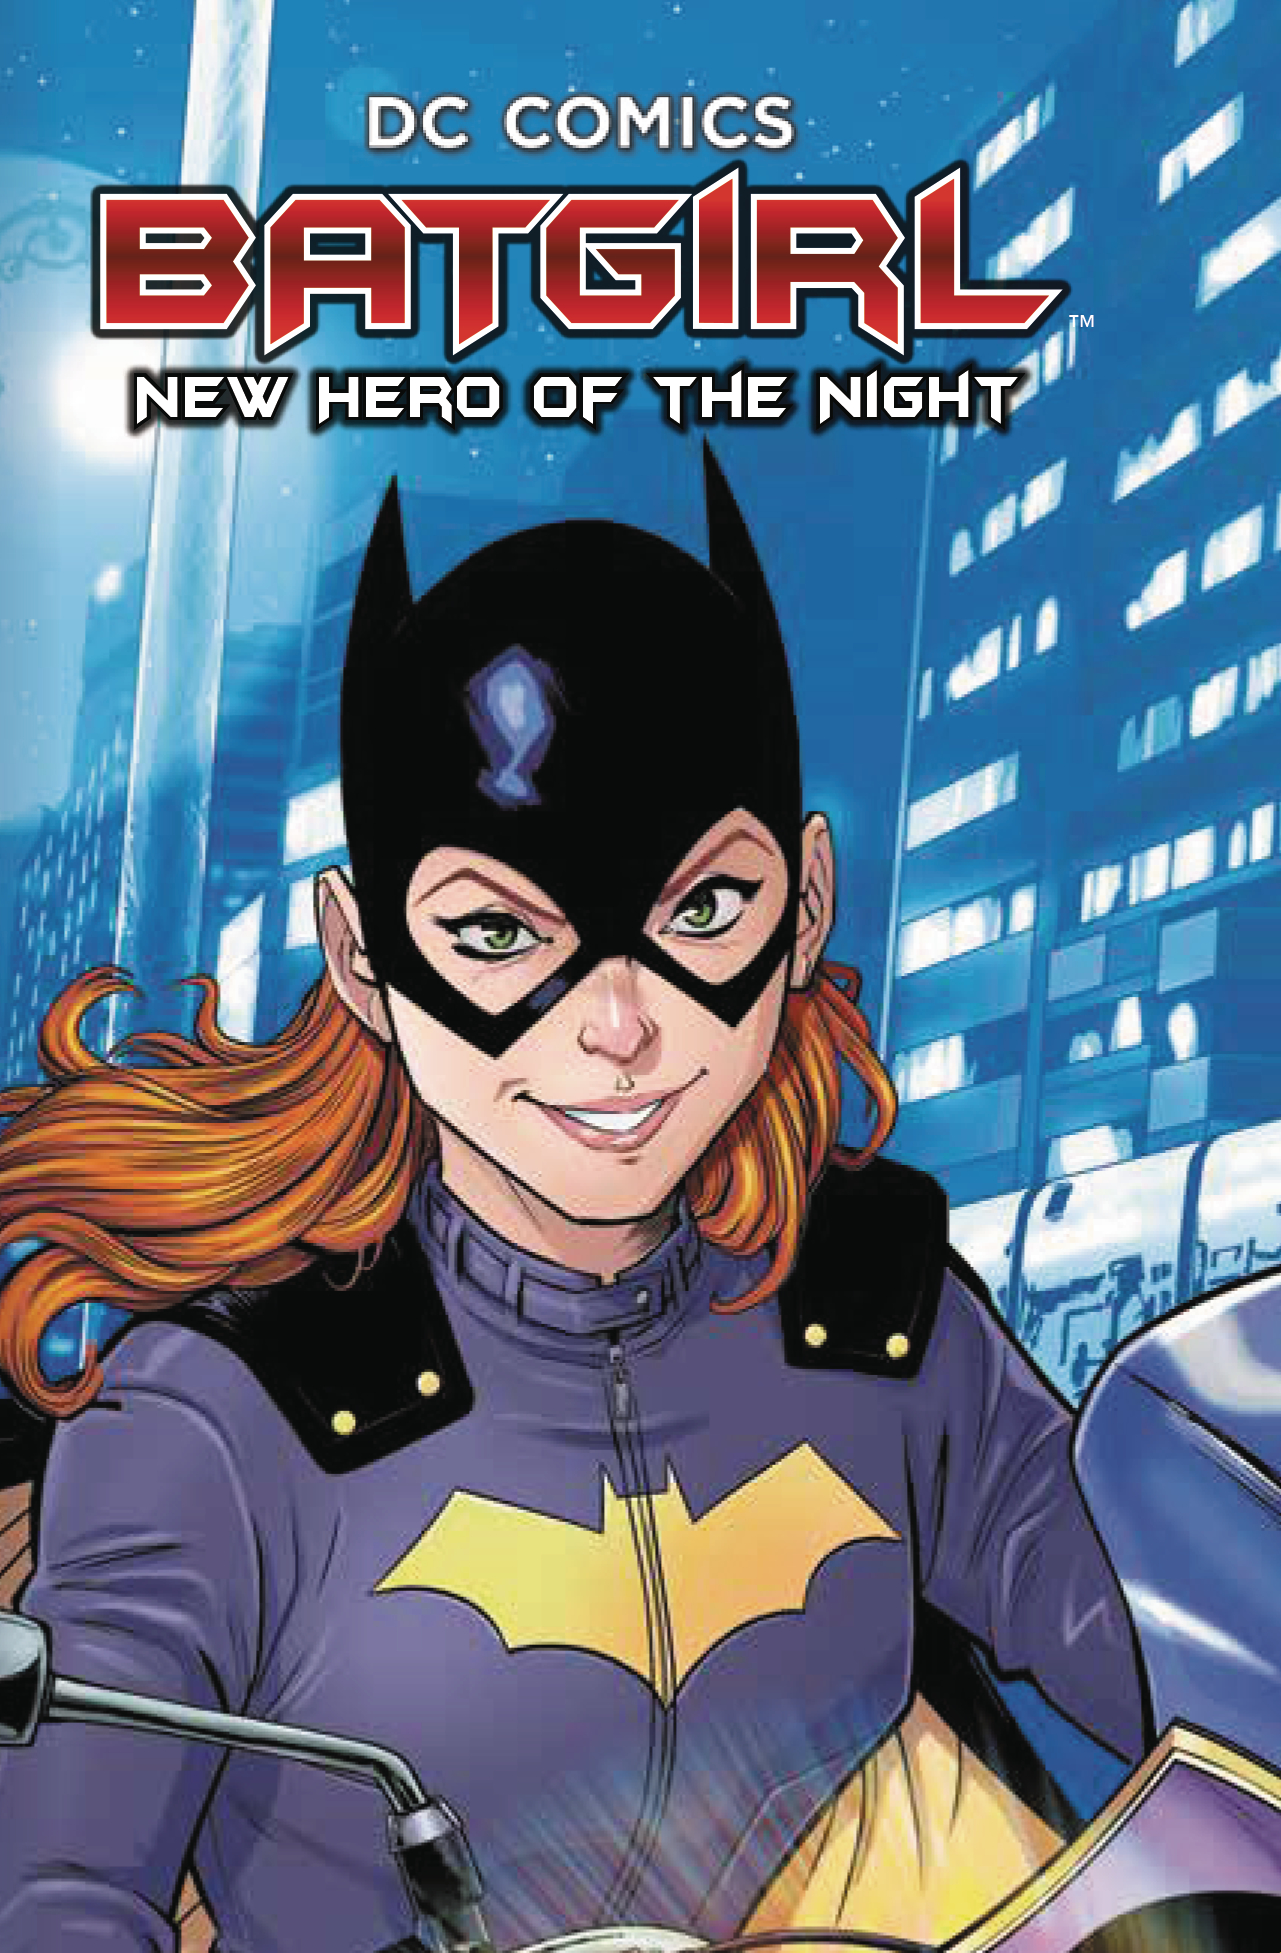 BATGIRL NEW HERO OF THE NIGHT YR SC